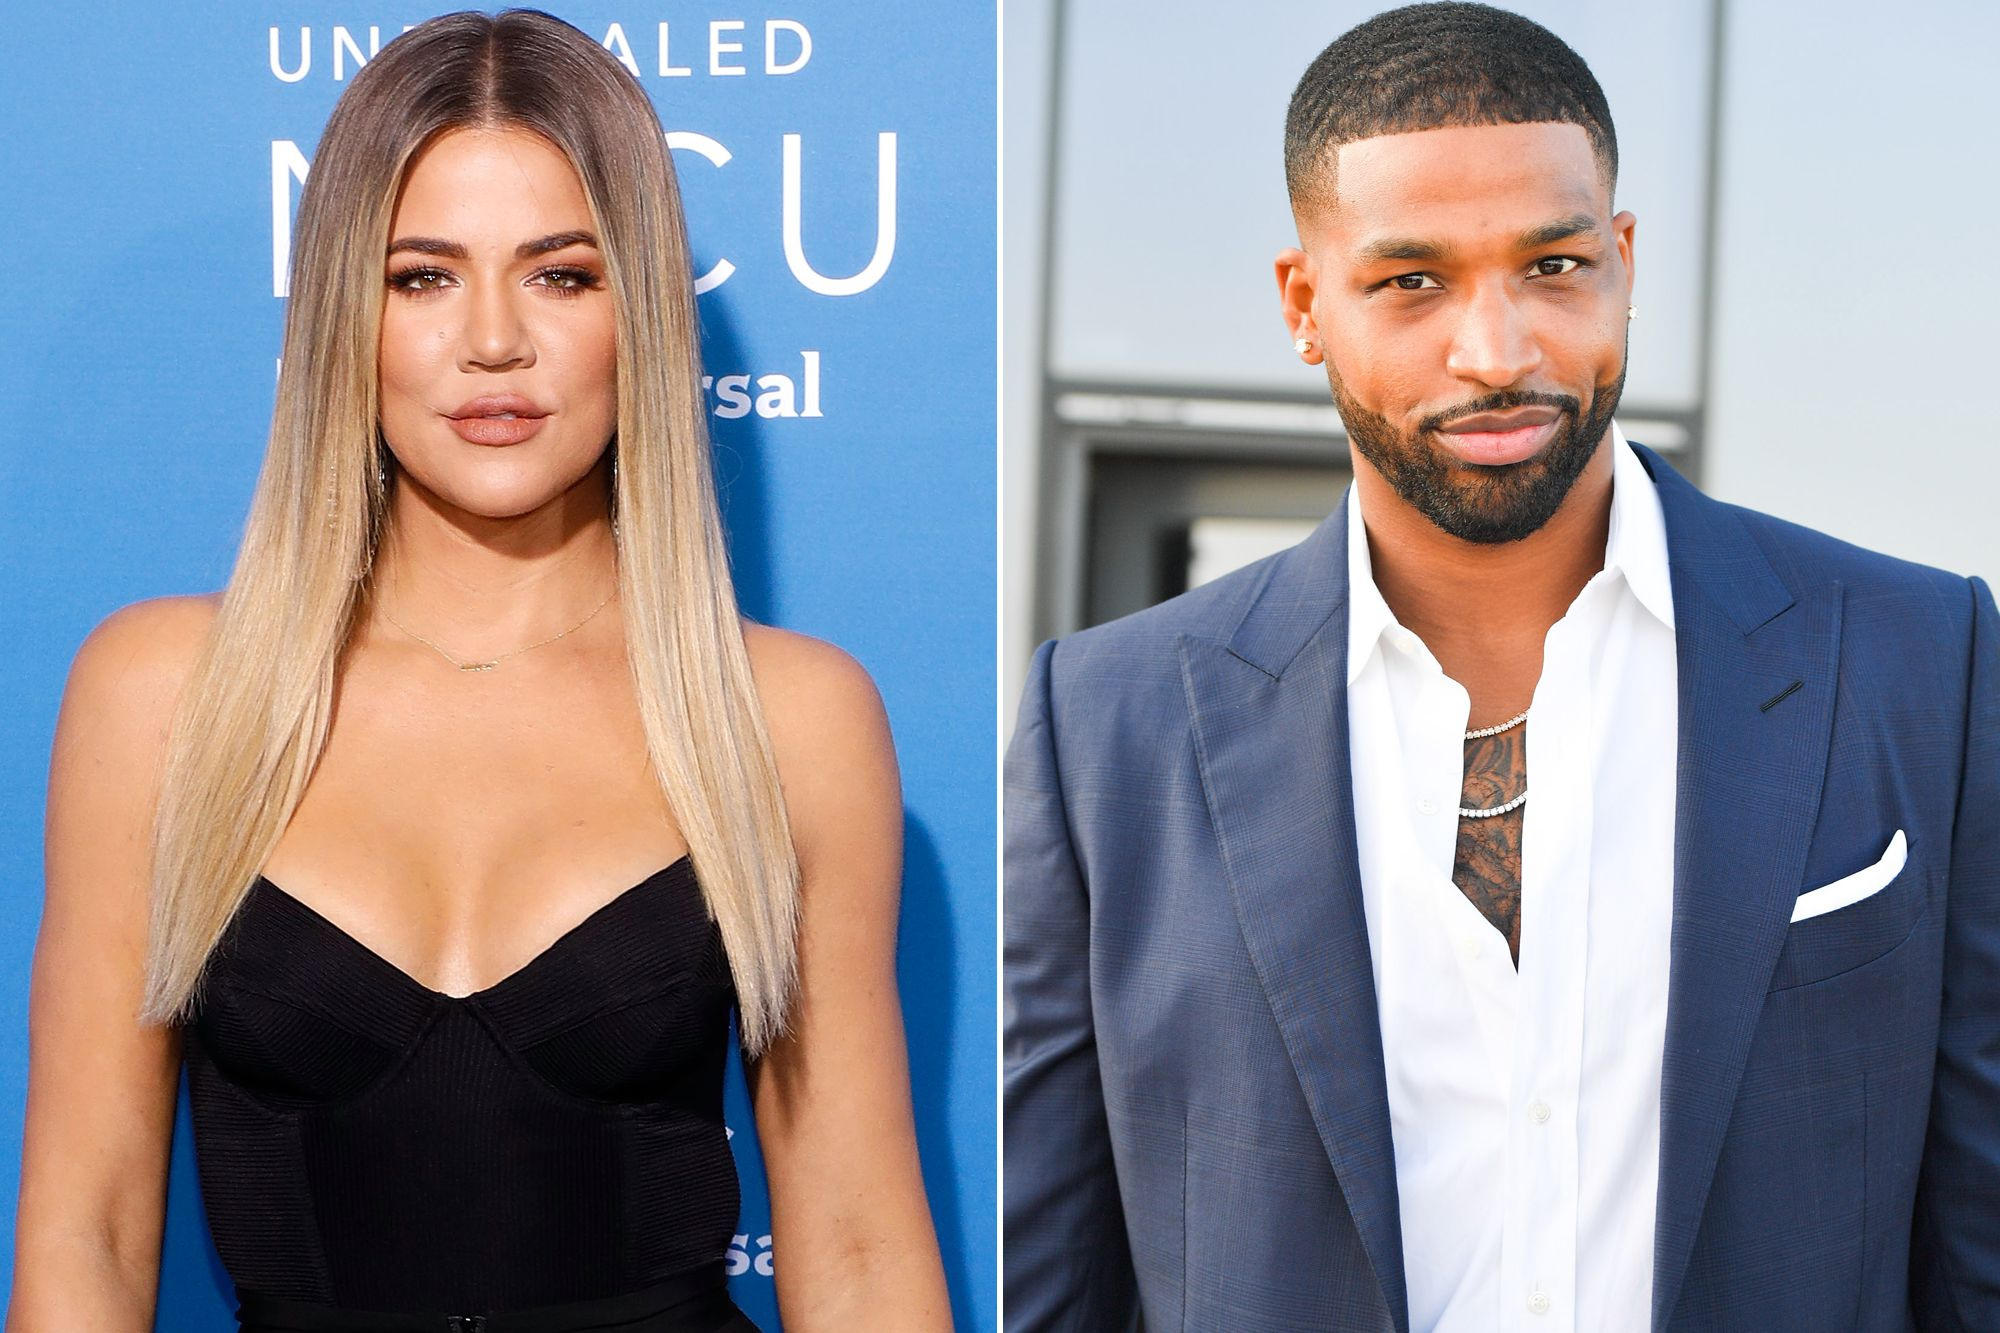 KUWTK: Tristan Thompson Shows Some Love To Khloe Kardashian On Social Media After Their Breakup!